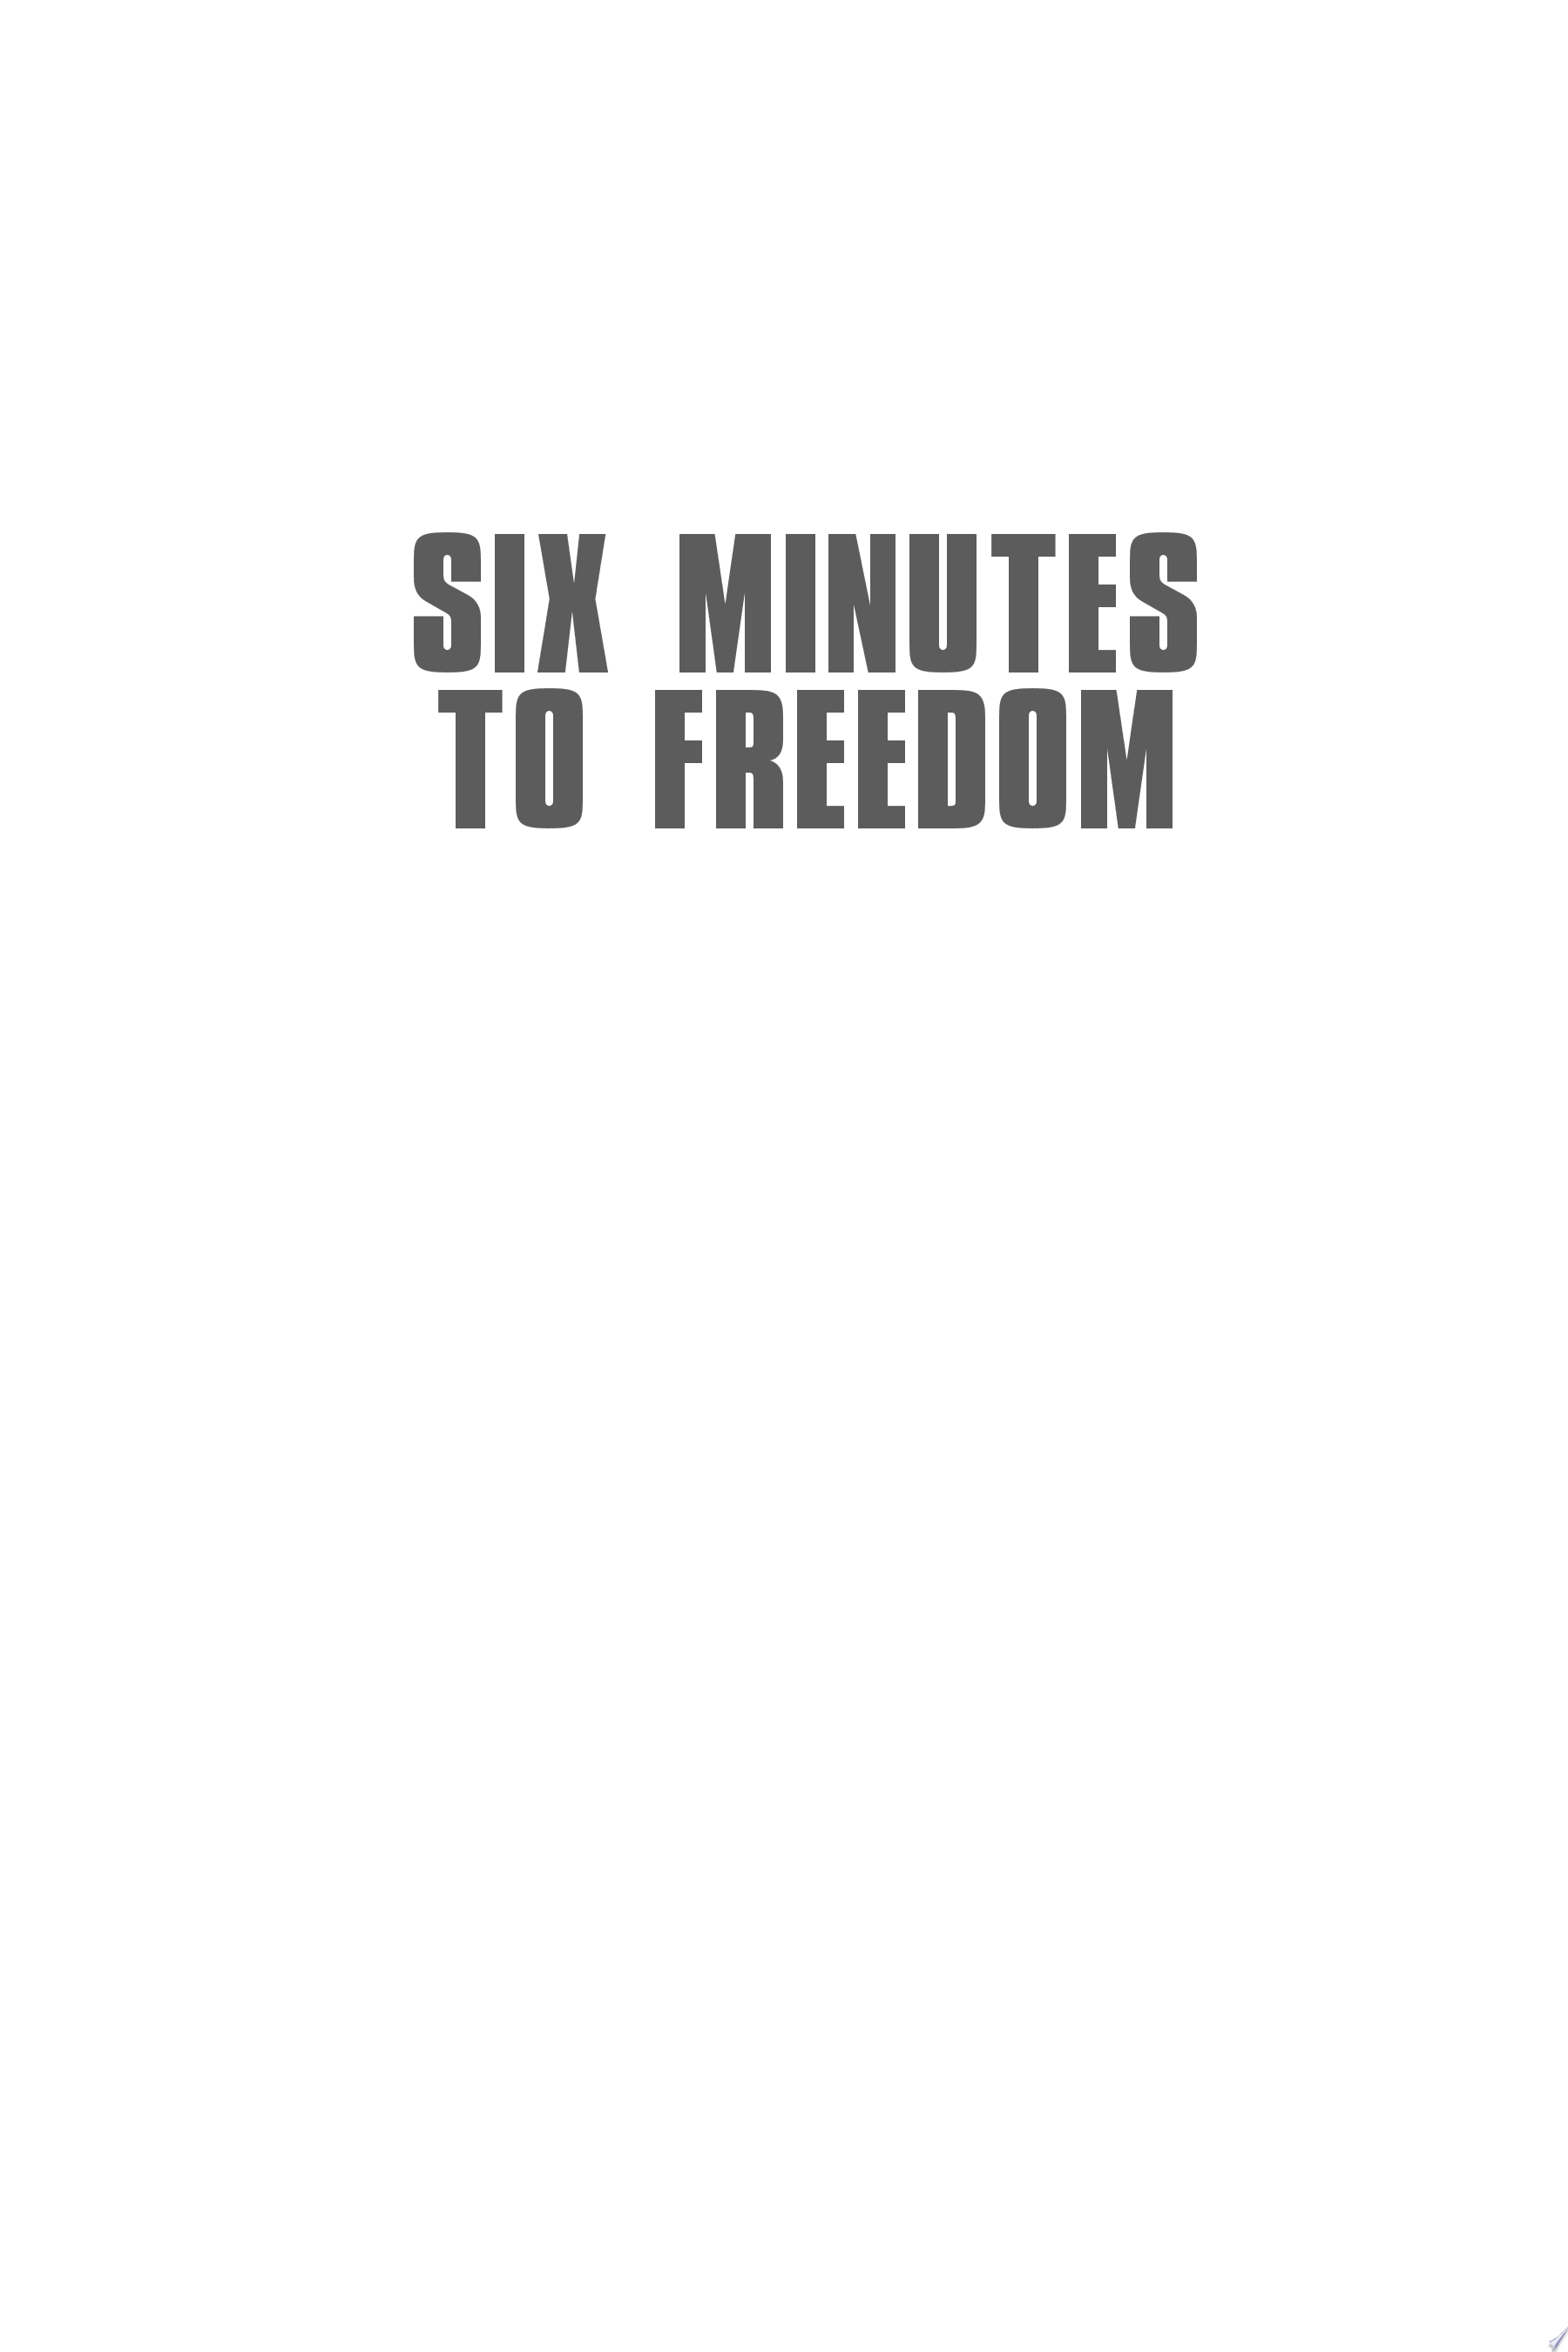 Six Minutes To Freedom